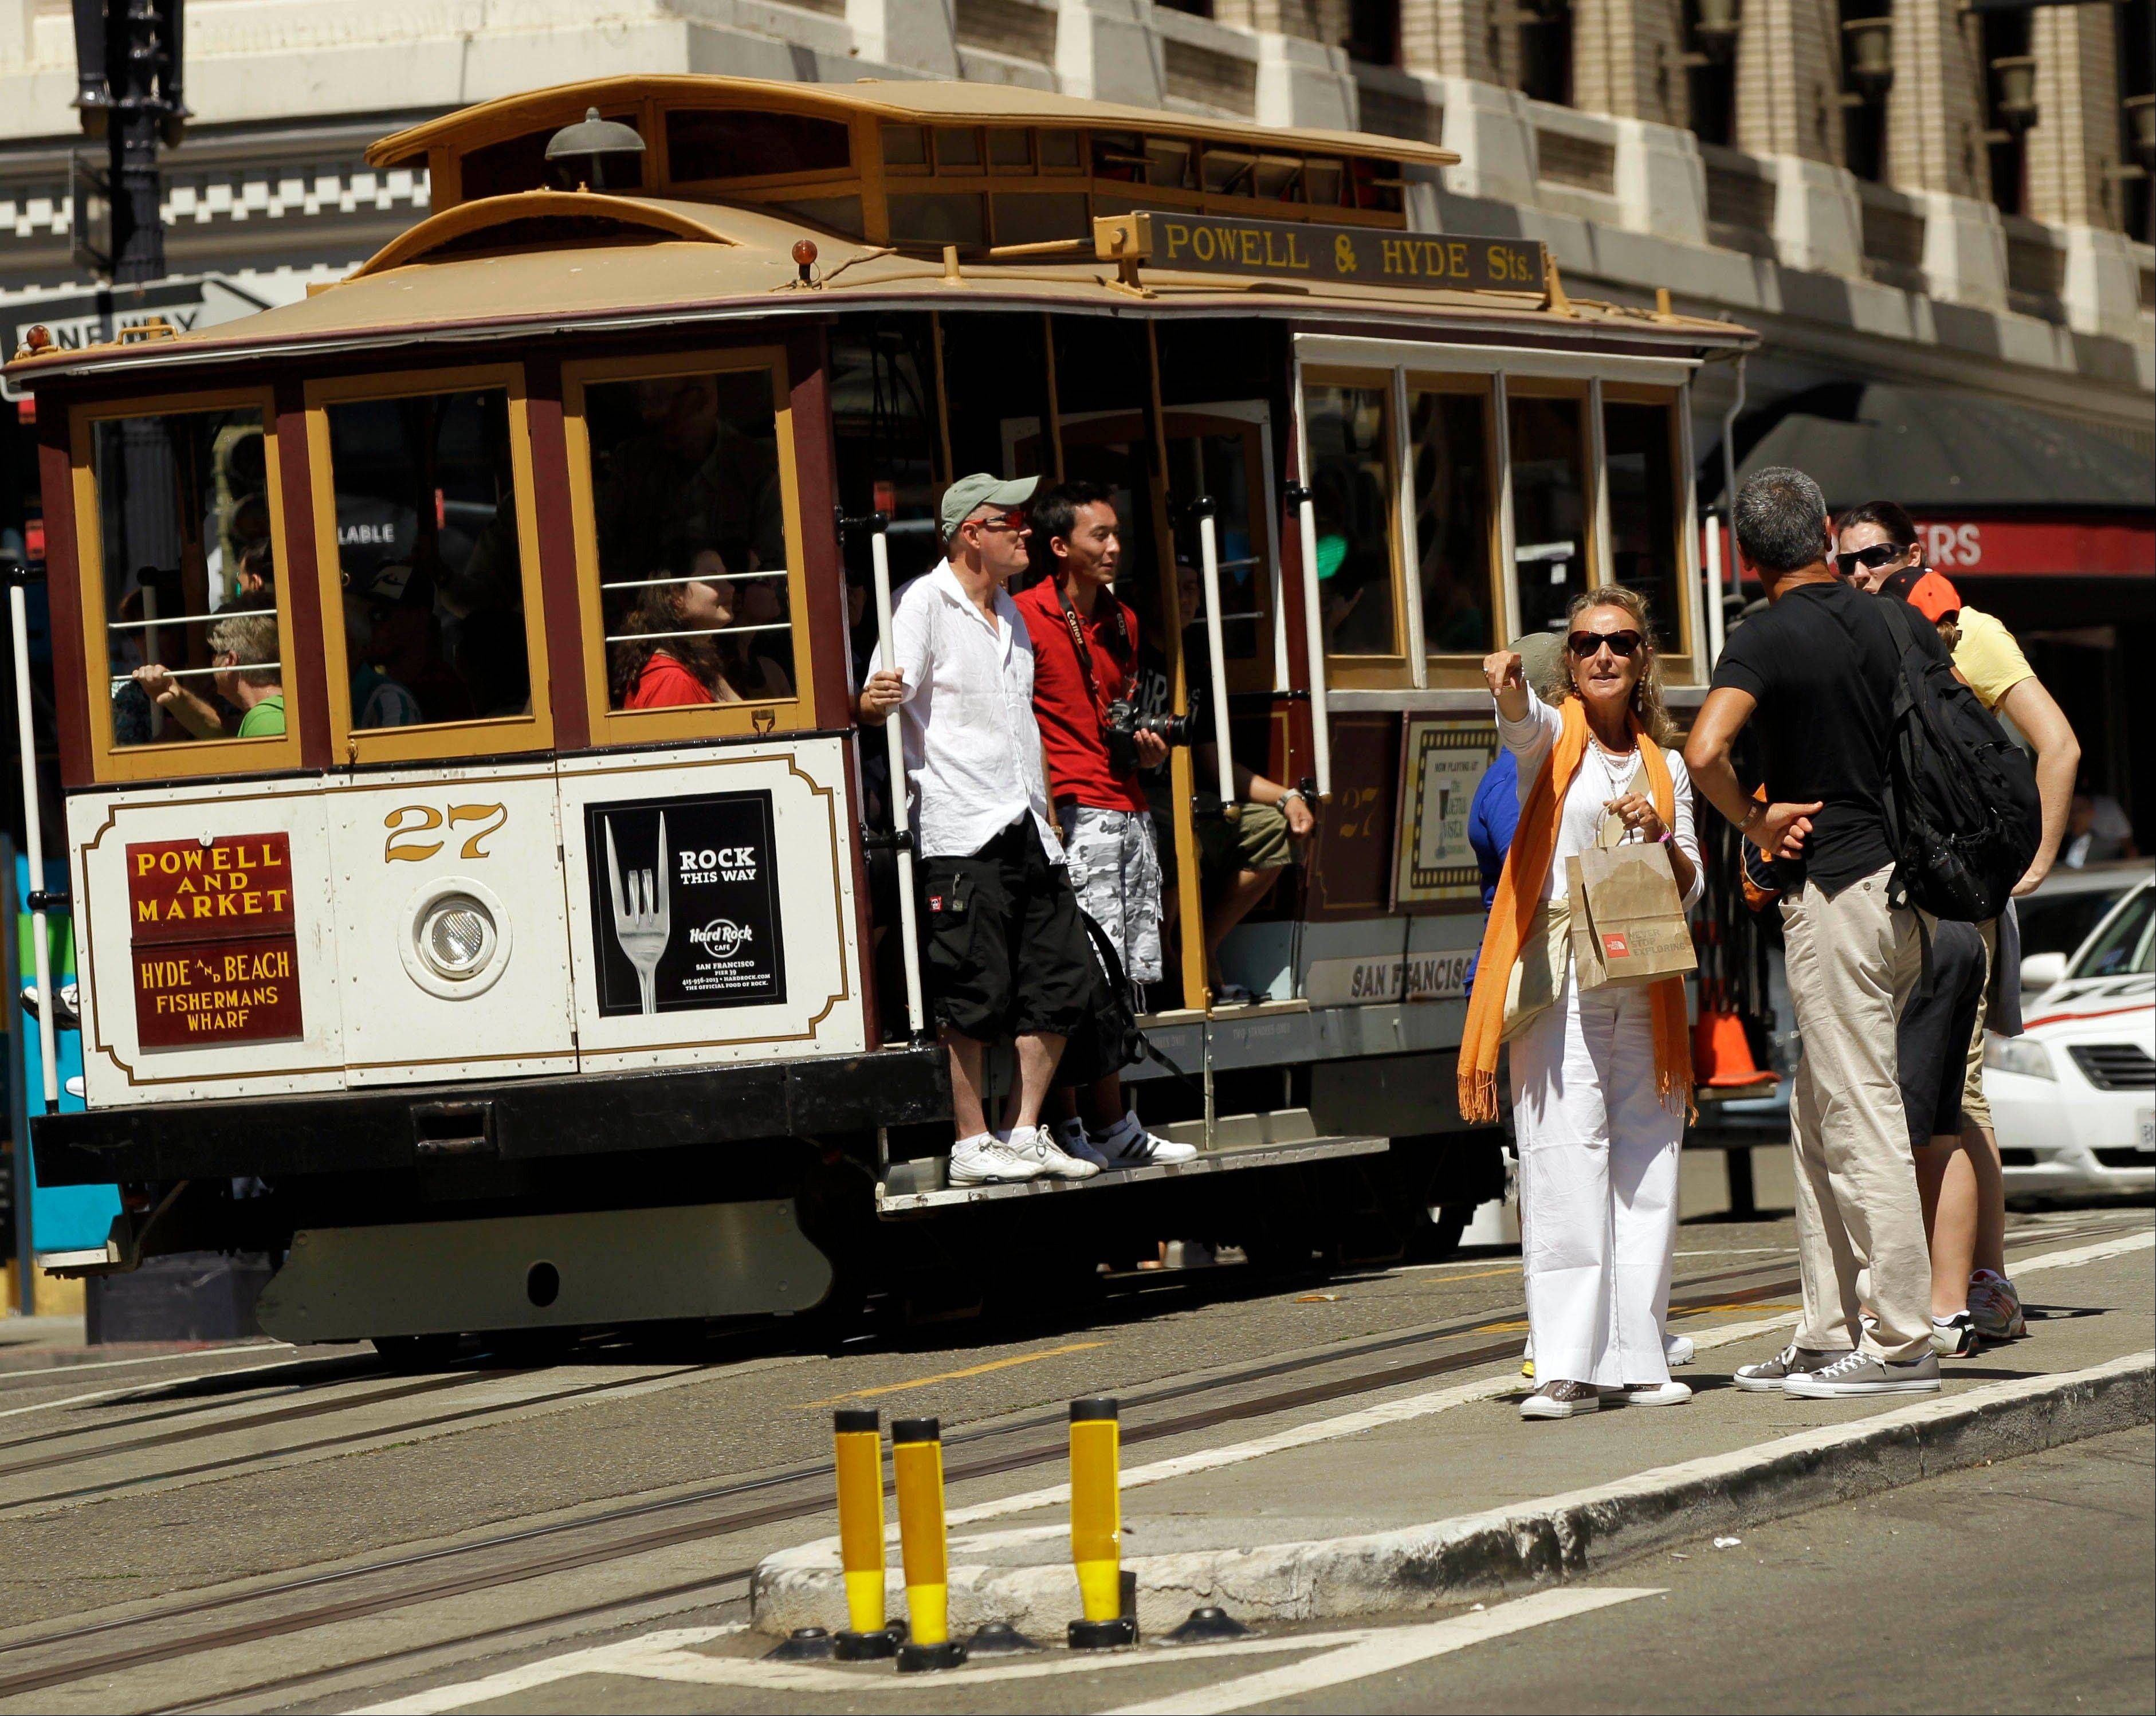 Visitors wait to board a cable car in San Francisco's Union Square.